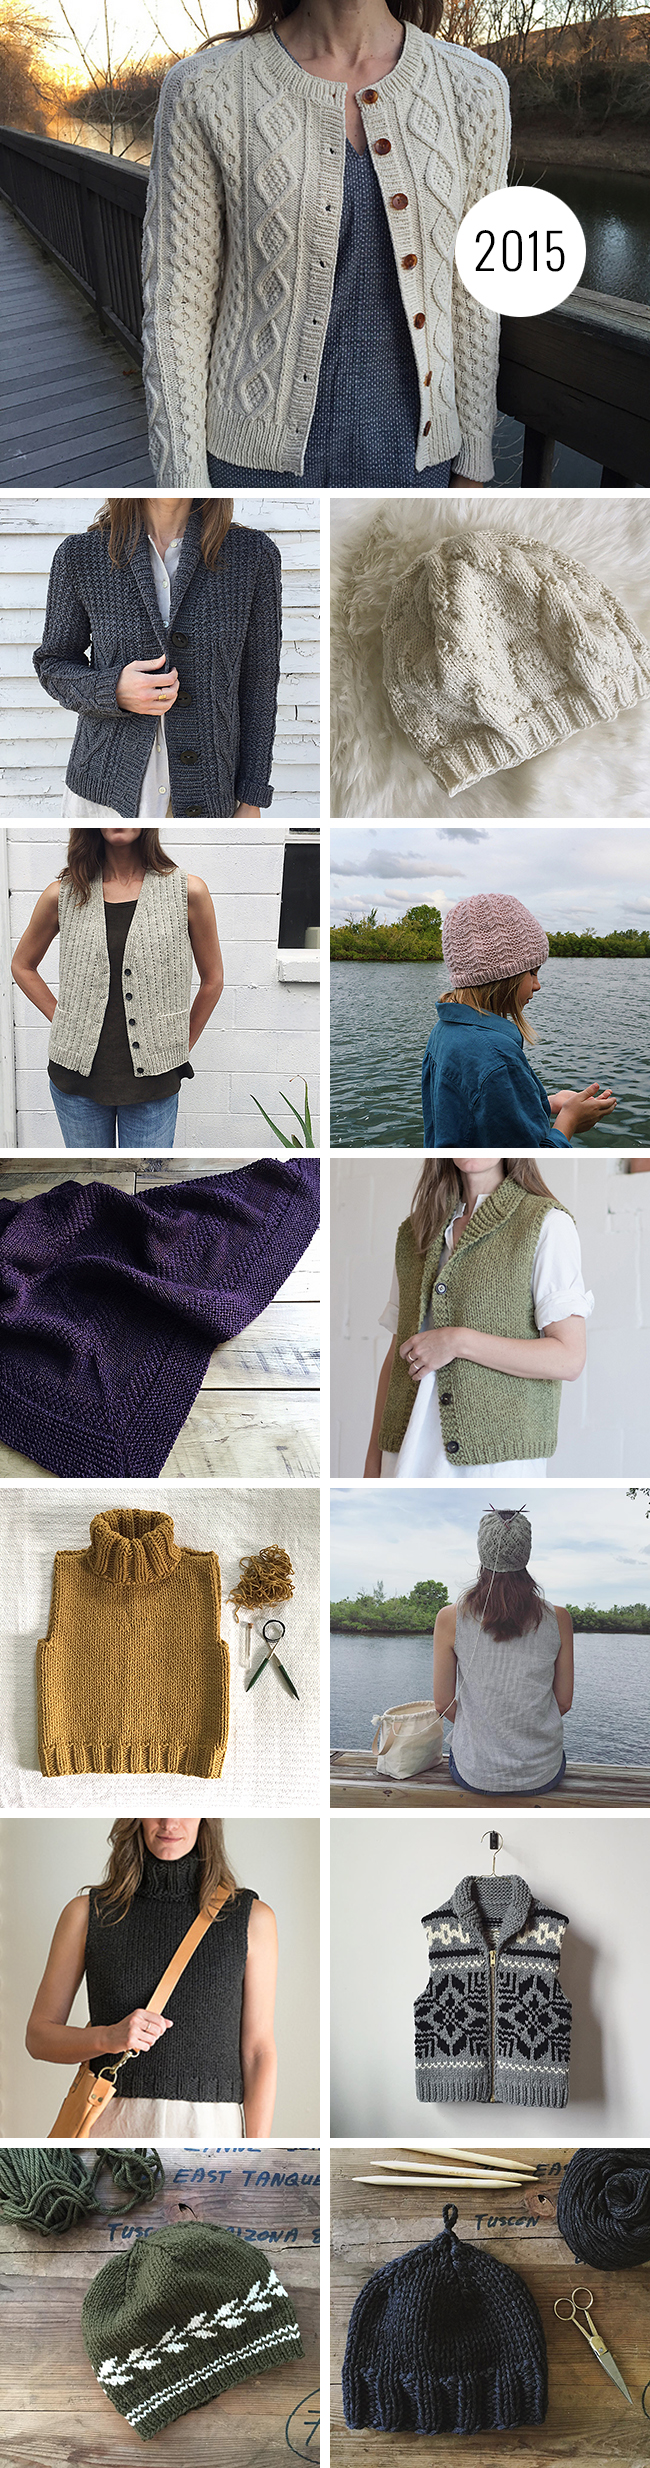 My knitting year in review